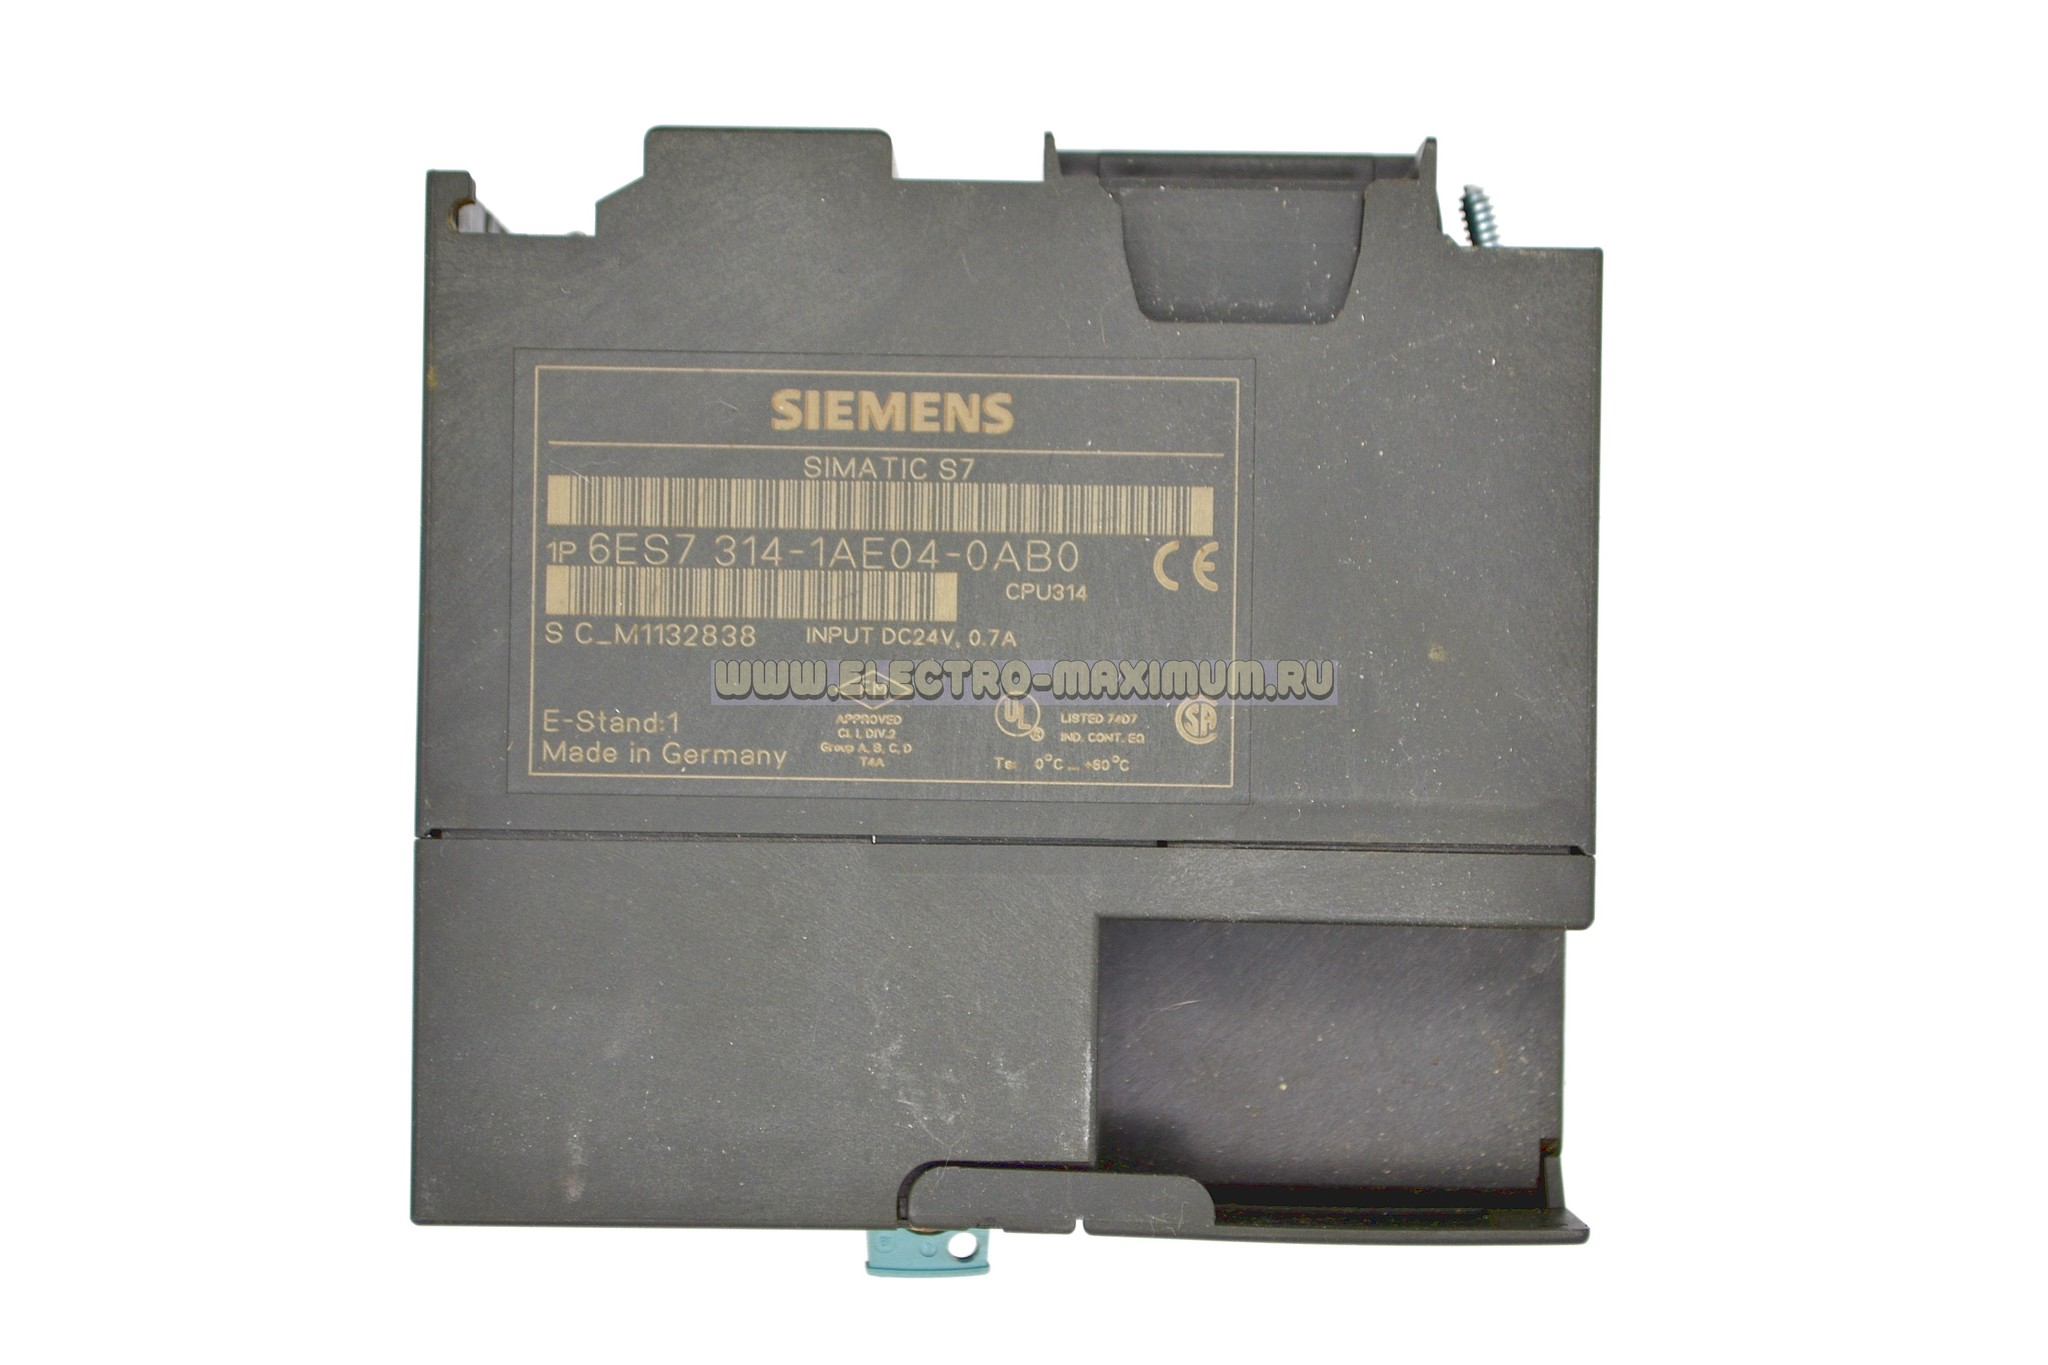 SIMATIC S7-300, CPU 314 6ES7 314-1AE04-0AB0